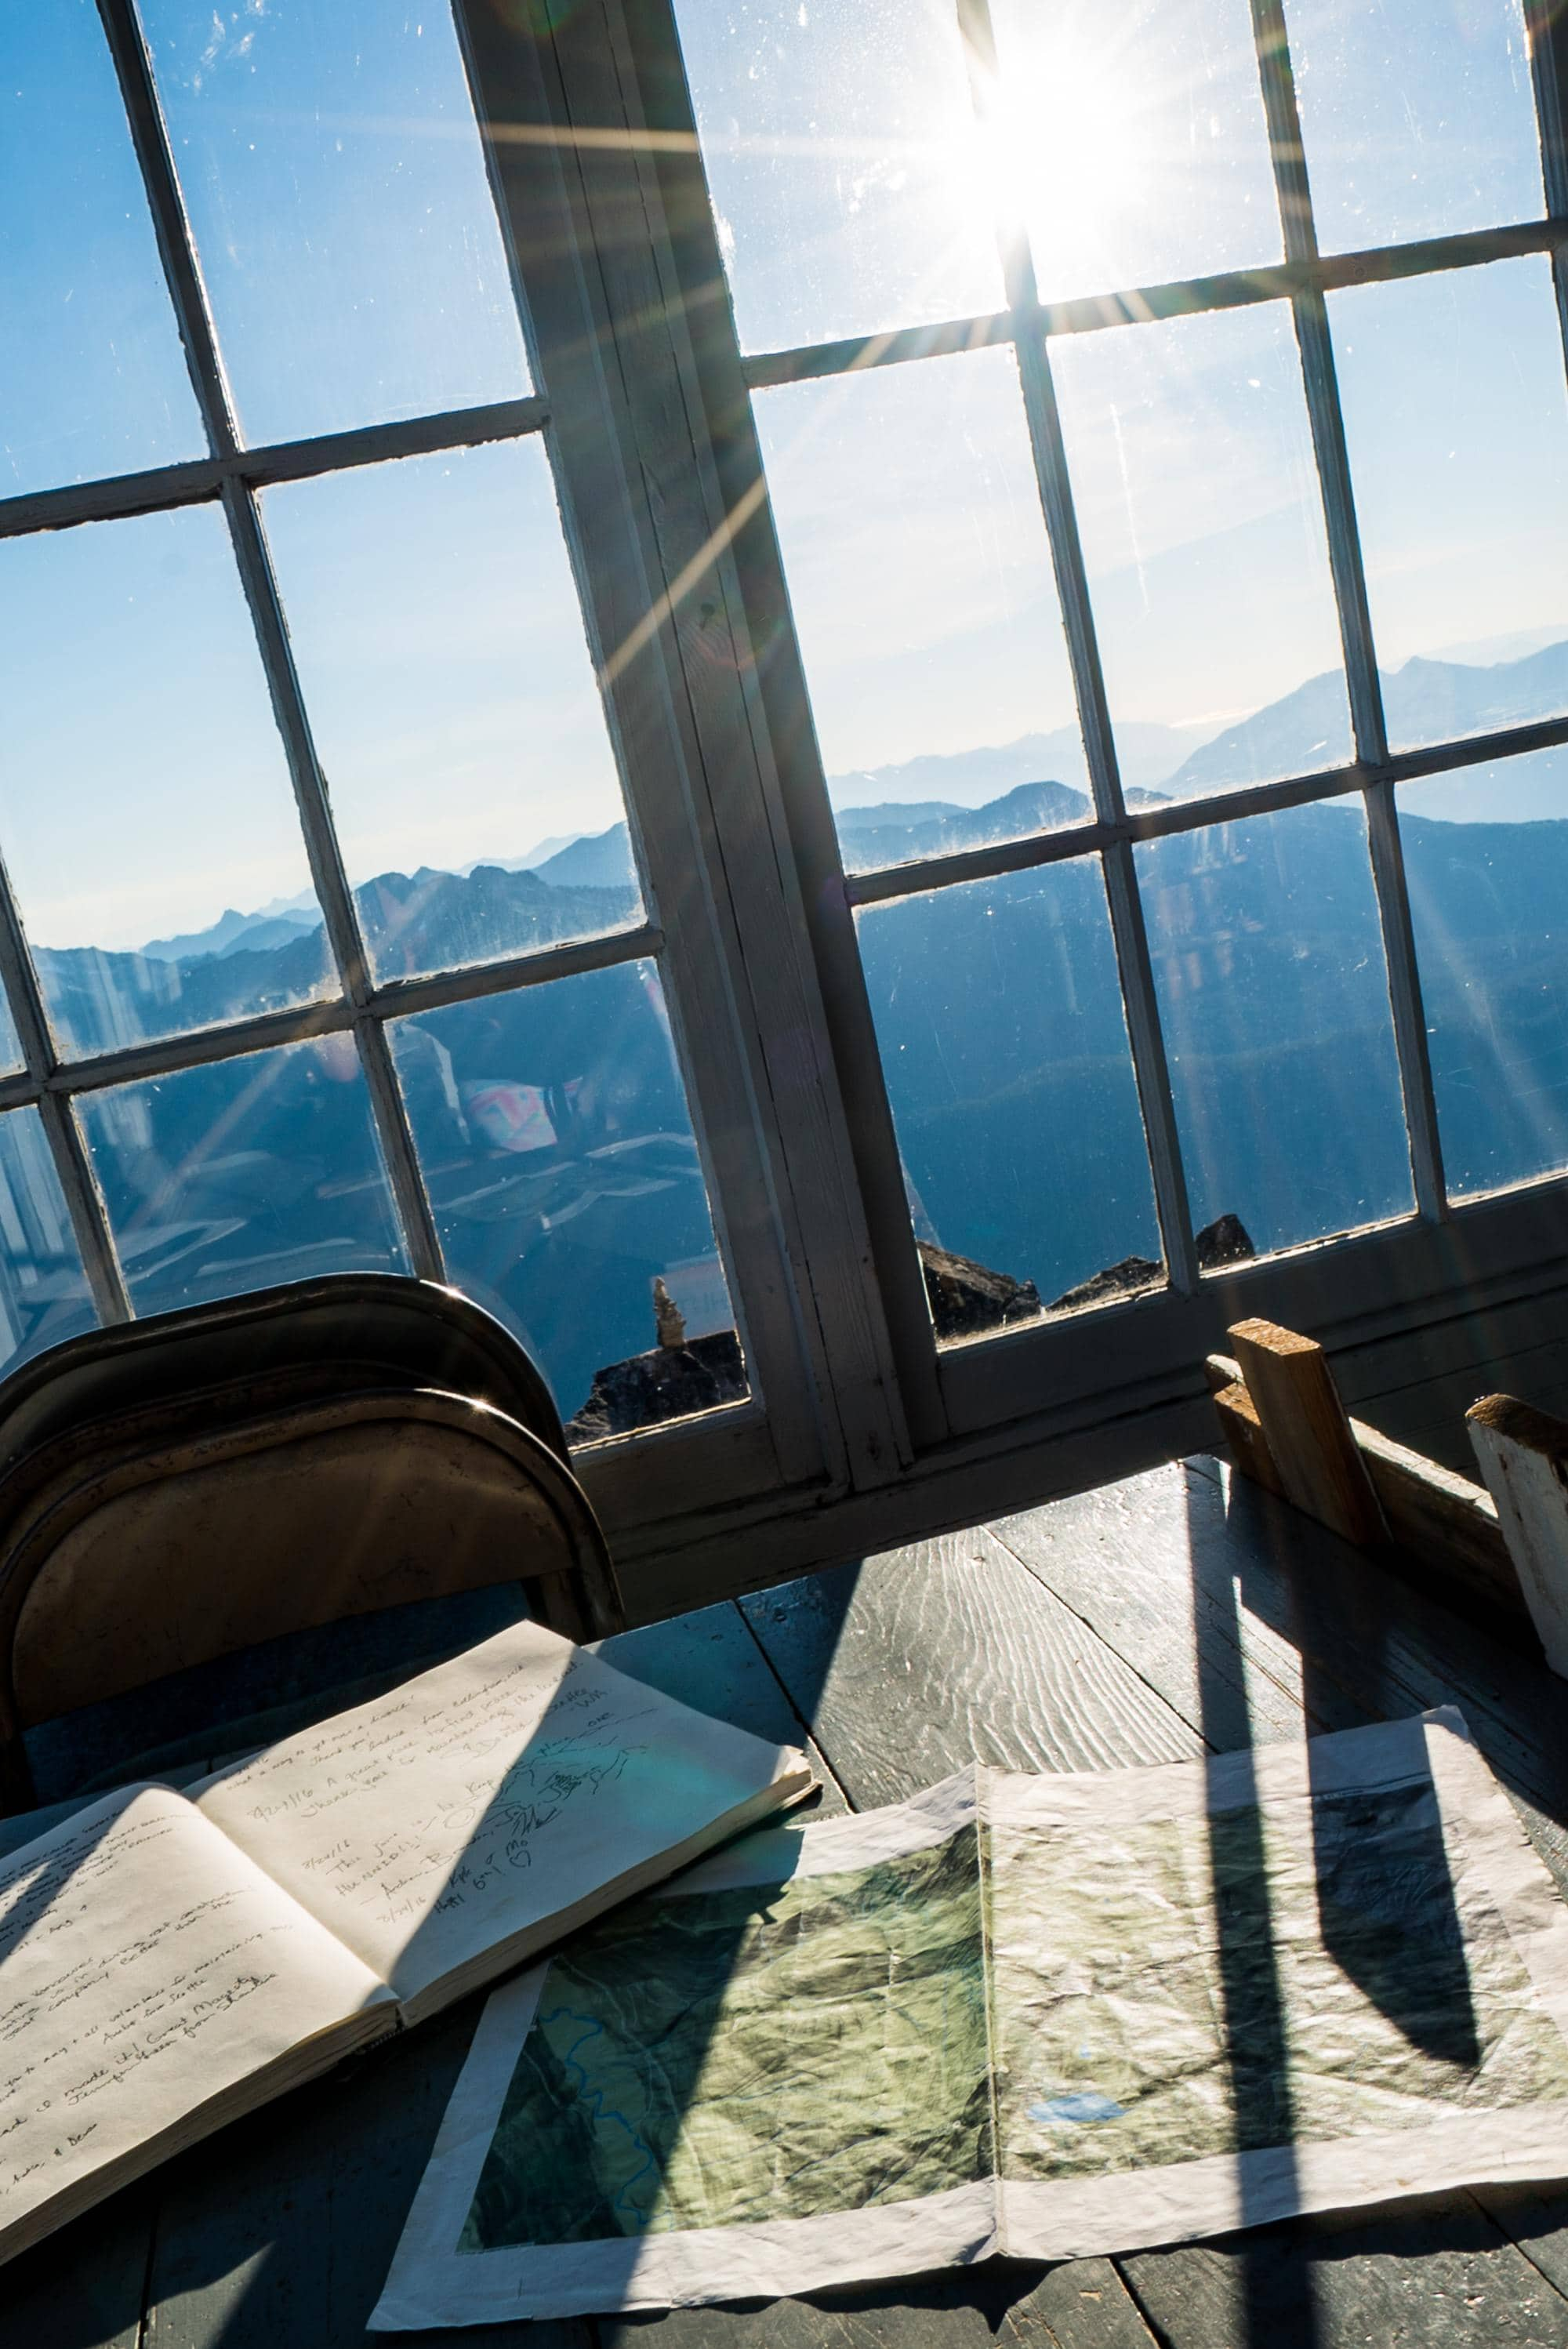 Hidden Lake Lookout is one of the best day-hikes / overnight backpacking trips in North Cascades National Park. Get our full trail guide & add this hike to your summer hiking bucketlist.